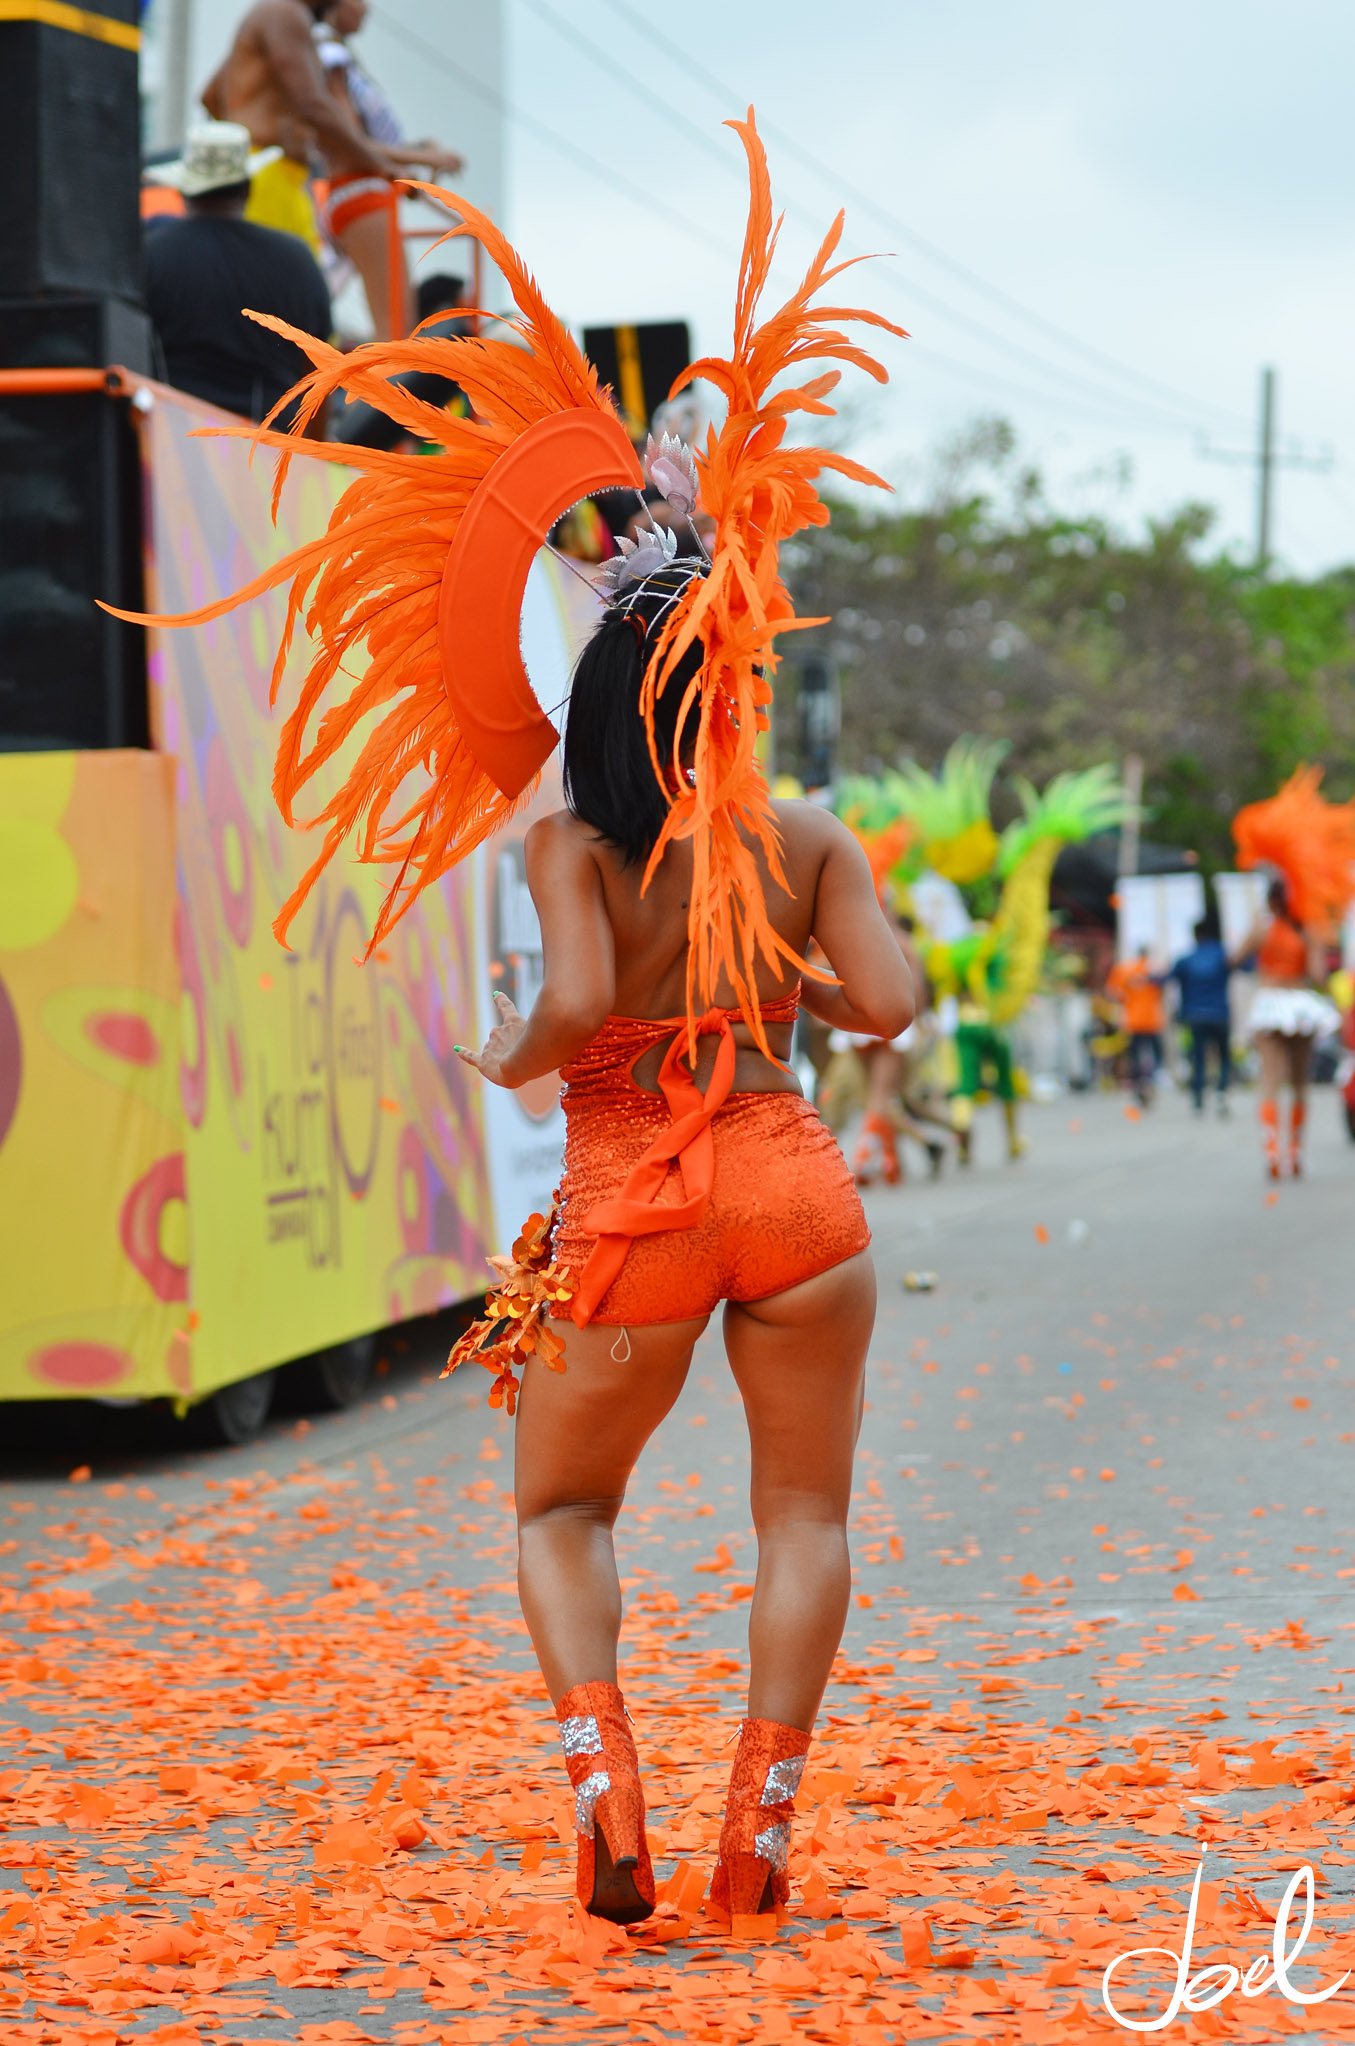 Reveler taking part in the Flower Parade (Photo: Joel Duncan)